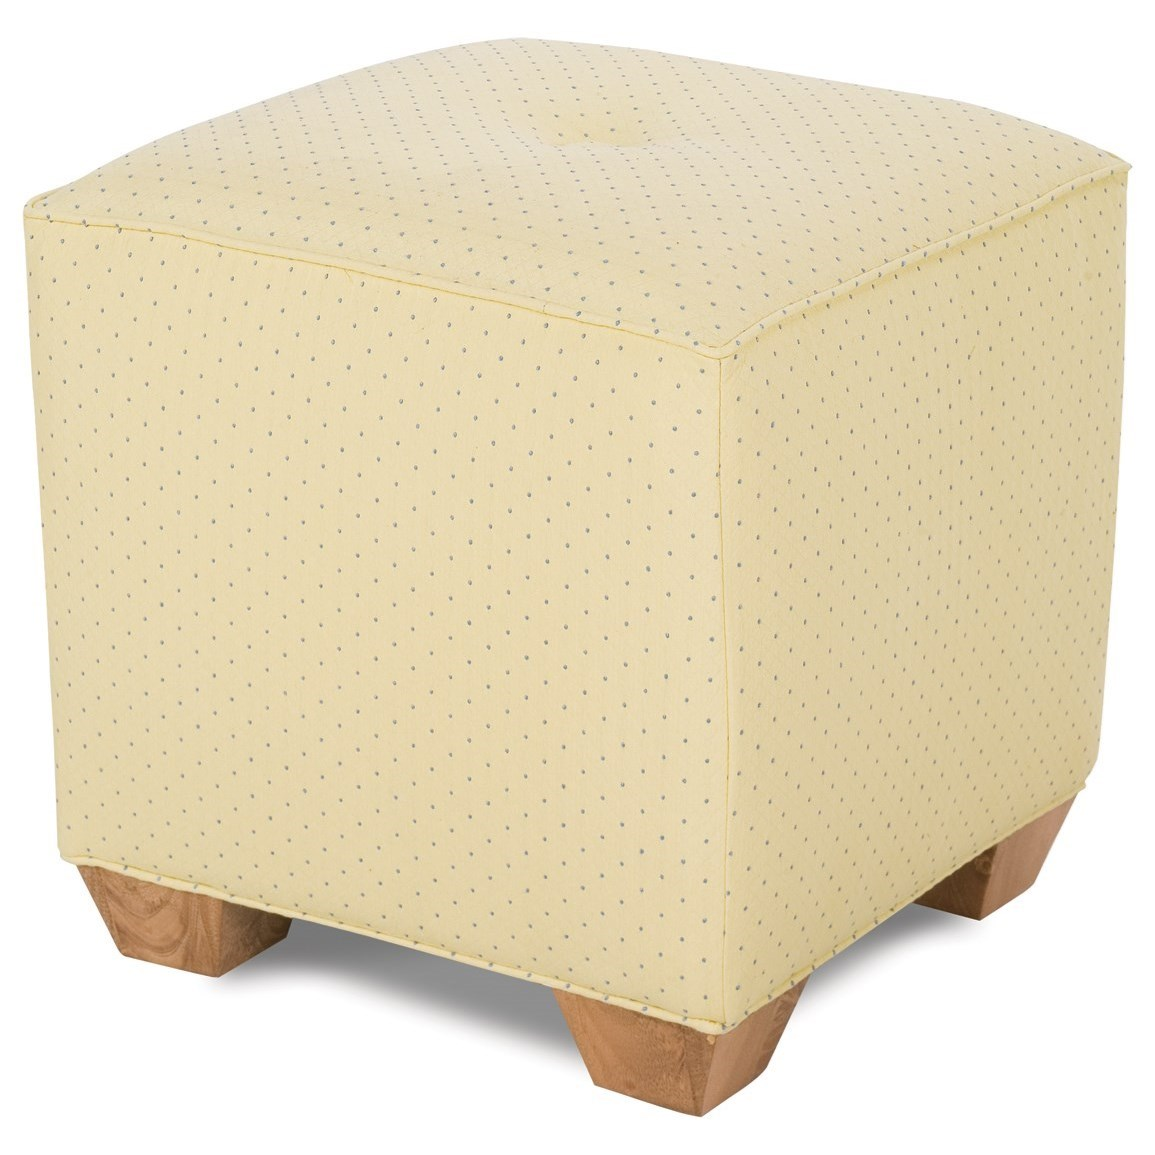 Chairs and Accents Le Parc Ottoman by Rowe at Baer's Furniture